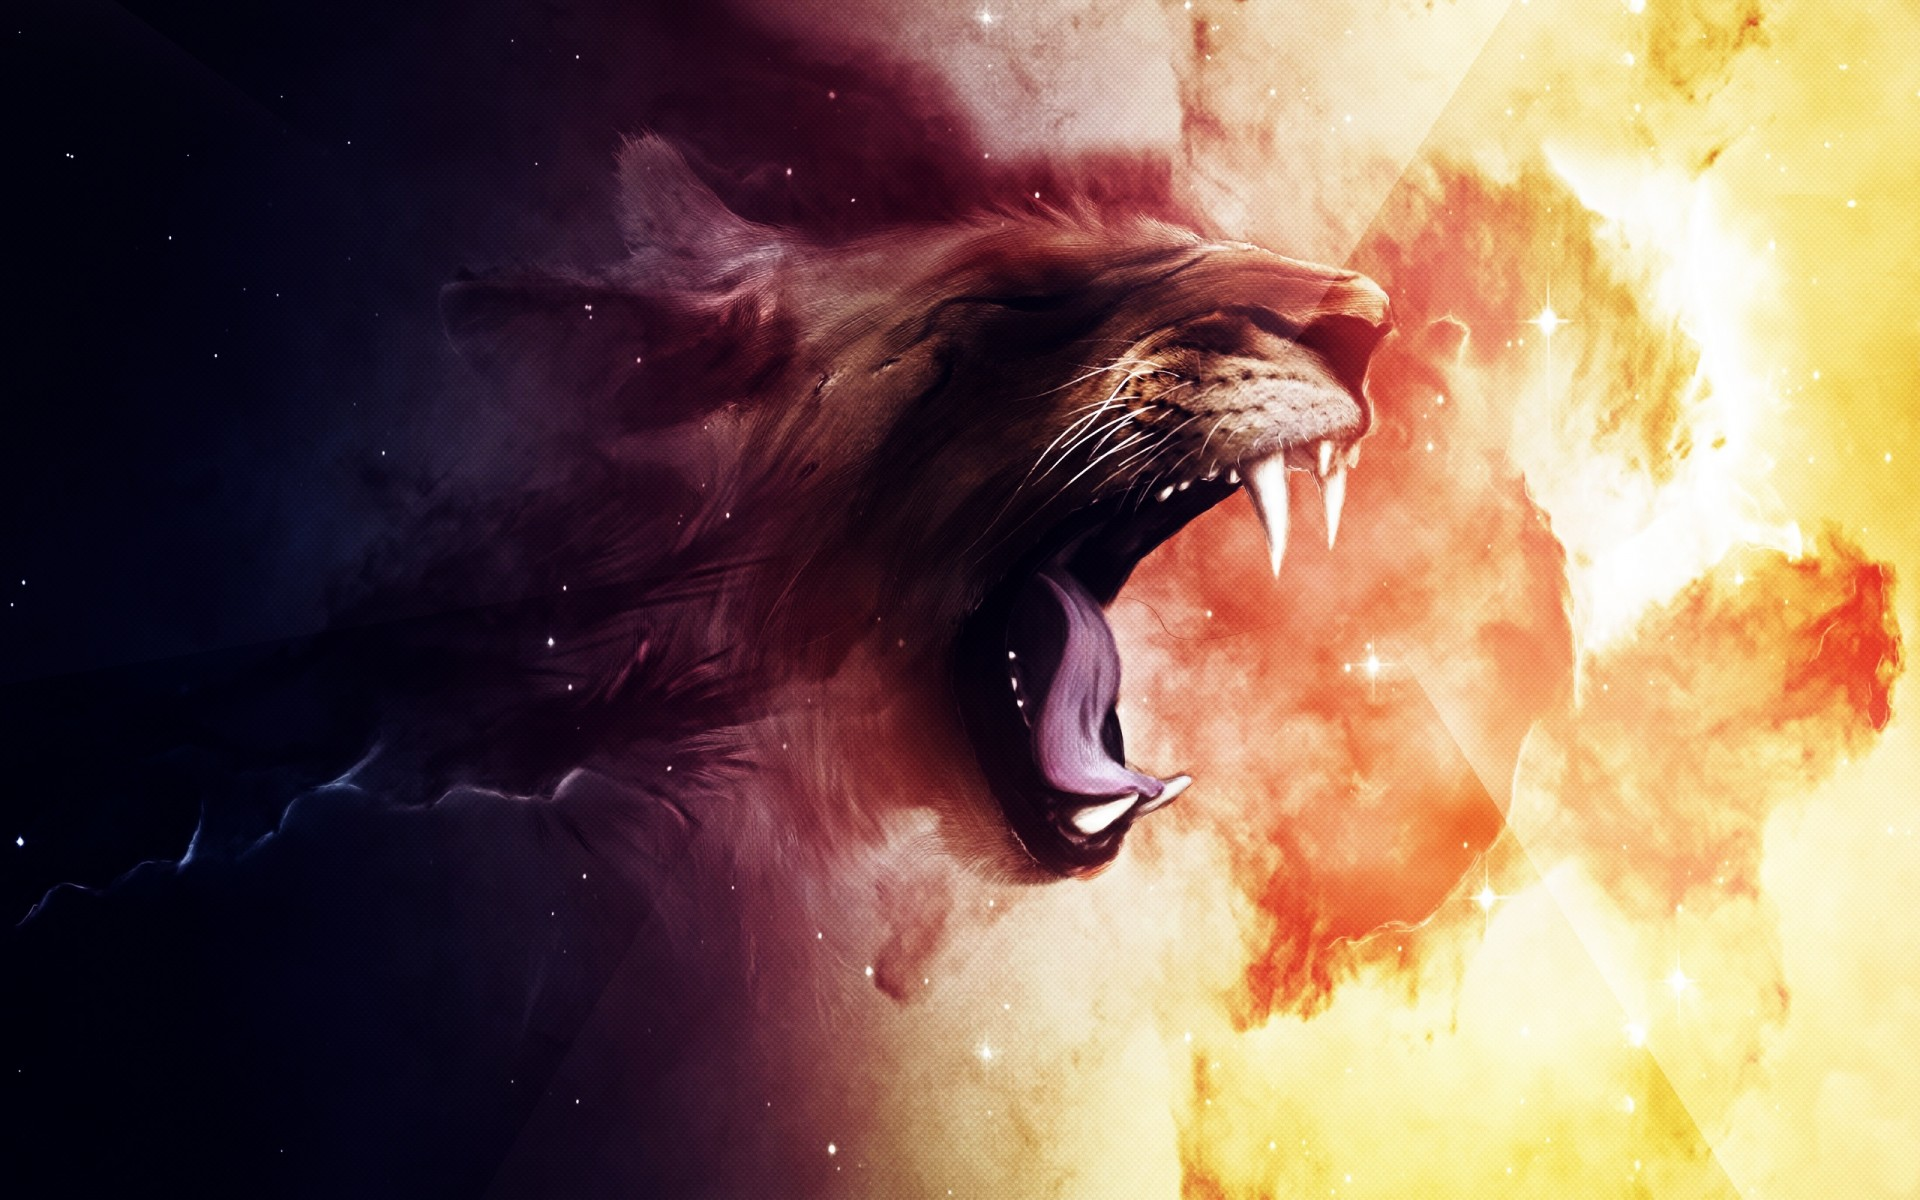 Cars Wallpapers 2014 Hd Download Roaring Lion Wallpapers Hd Wallpapers Id 13172